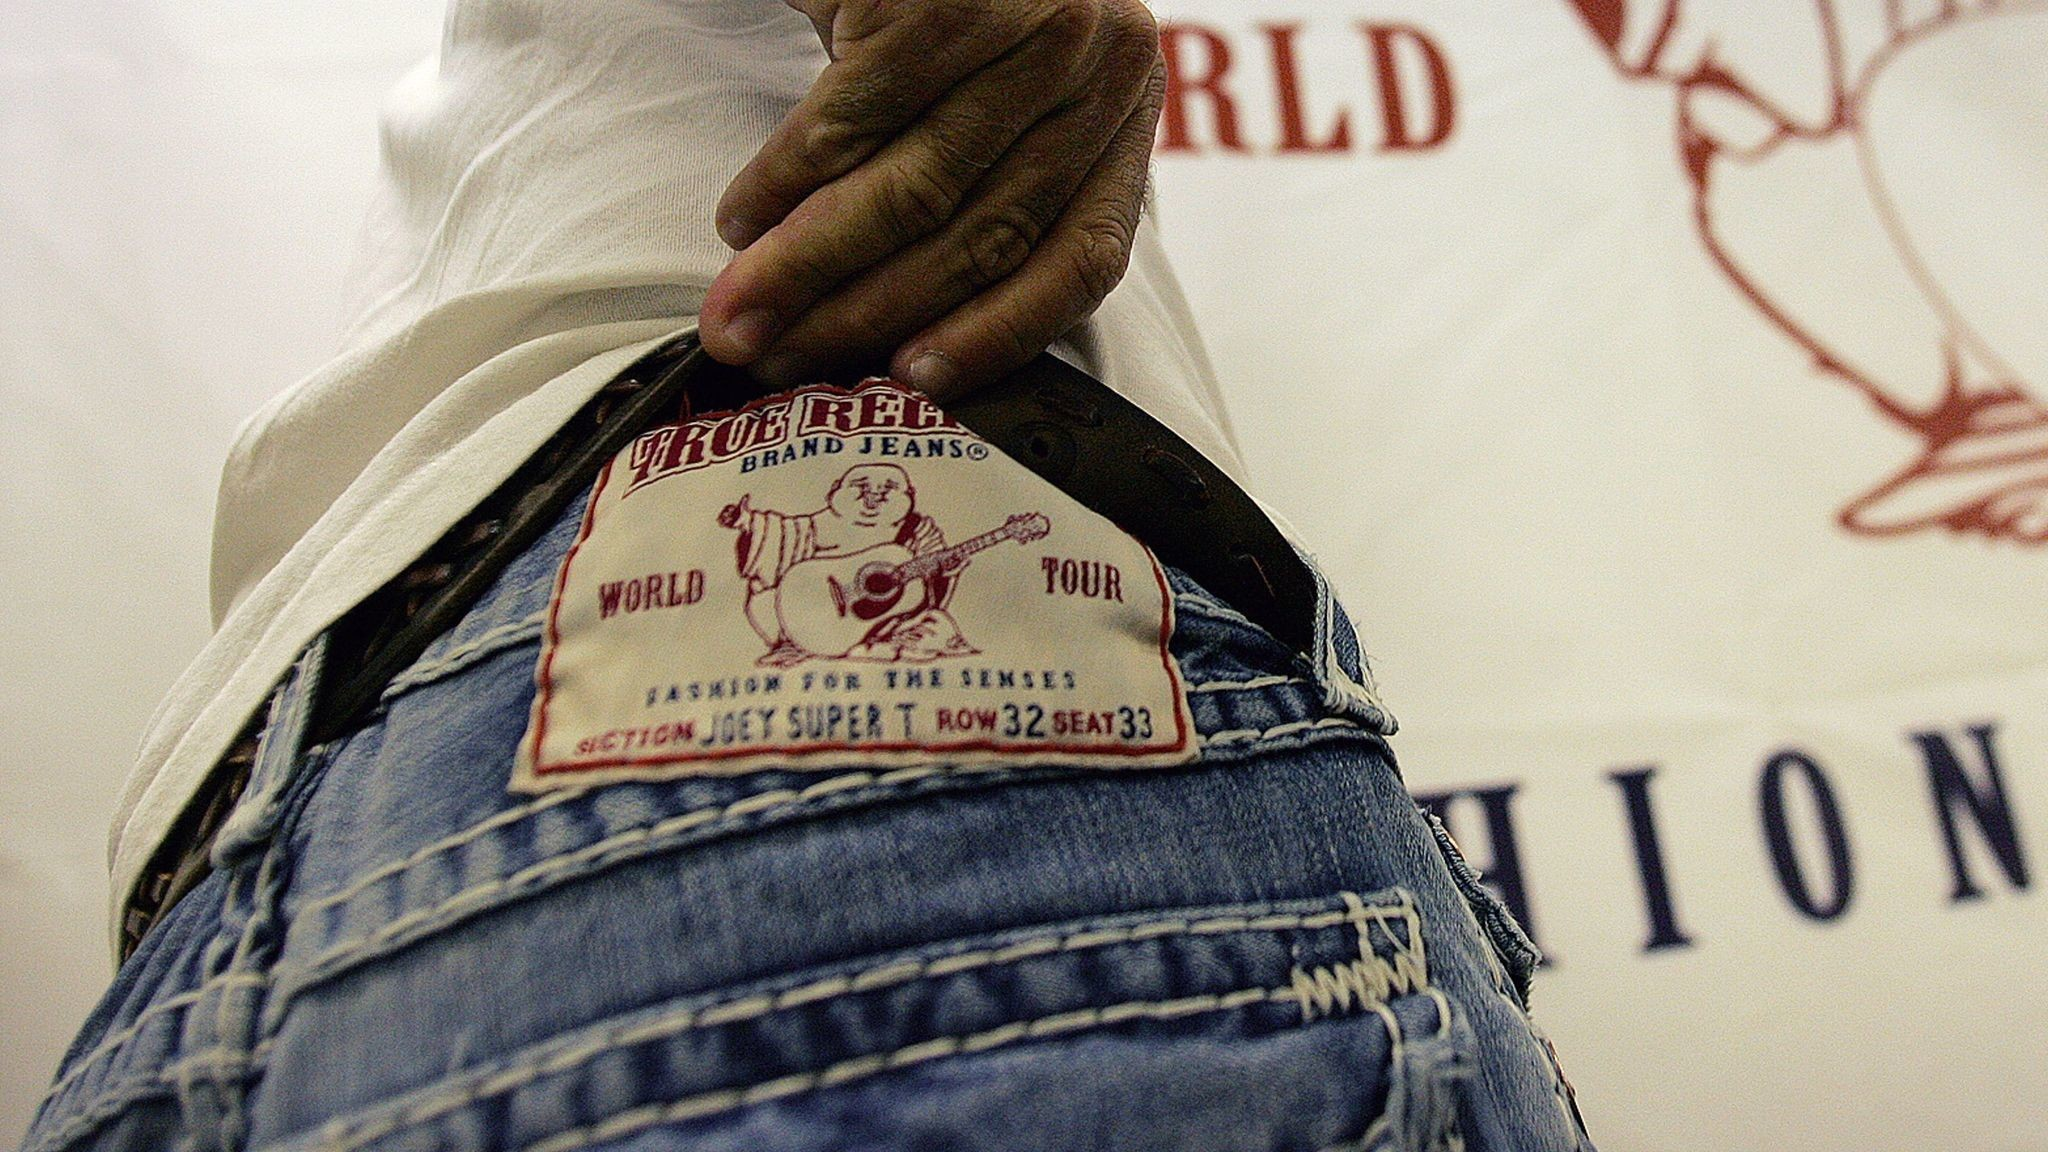 Pricey jeans maker True Religion files for bankruptcy protection – LA Times